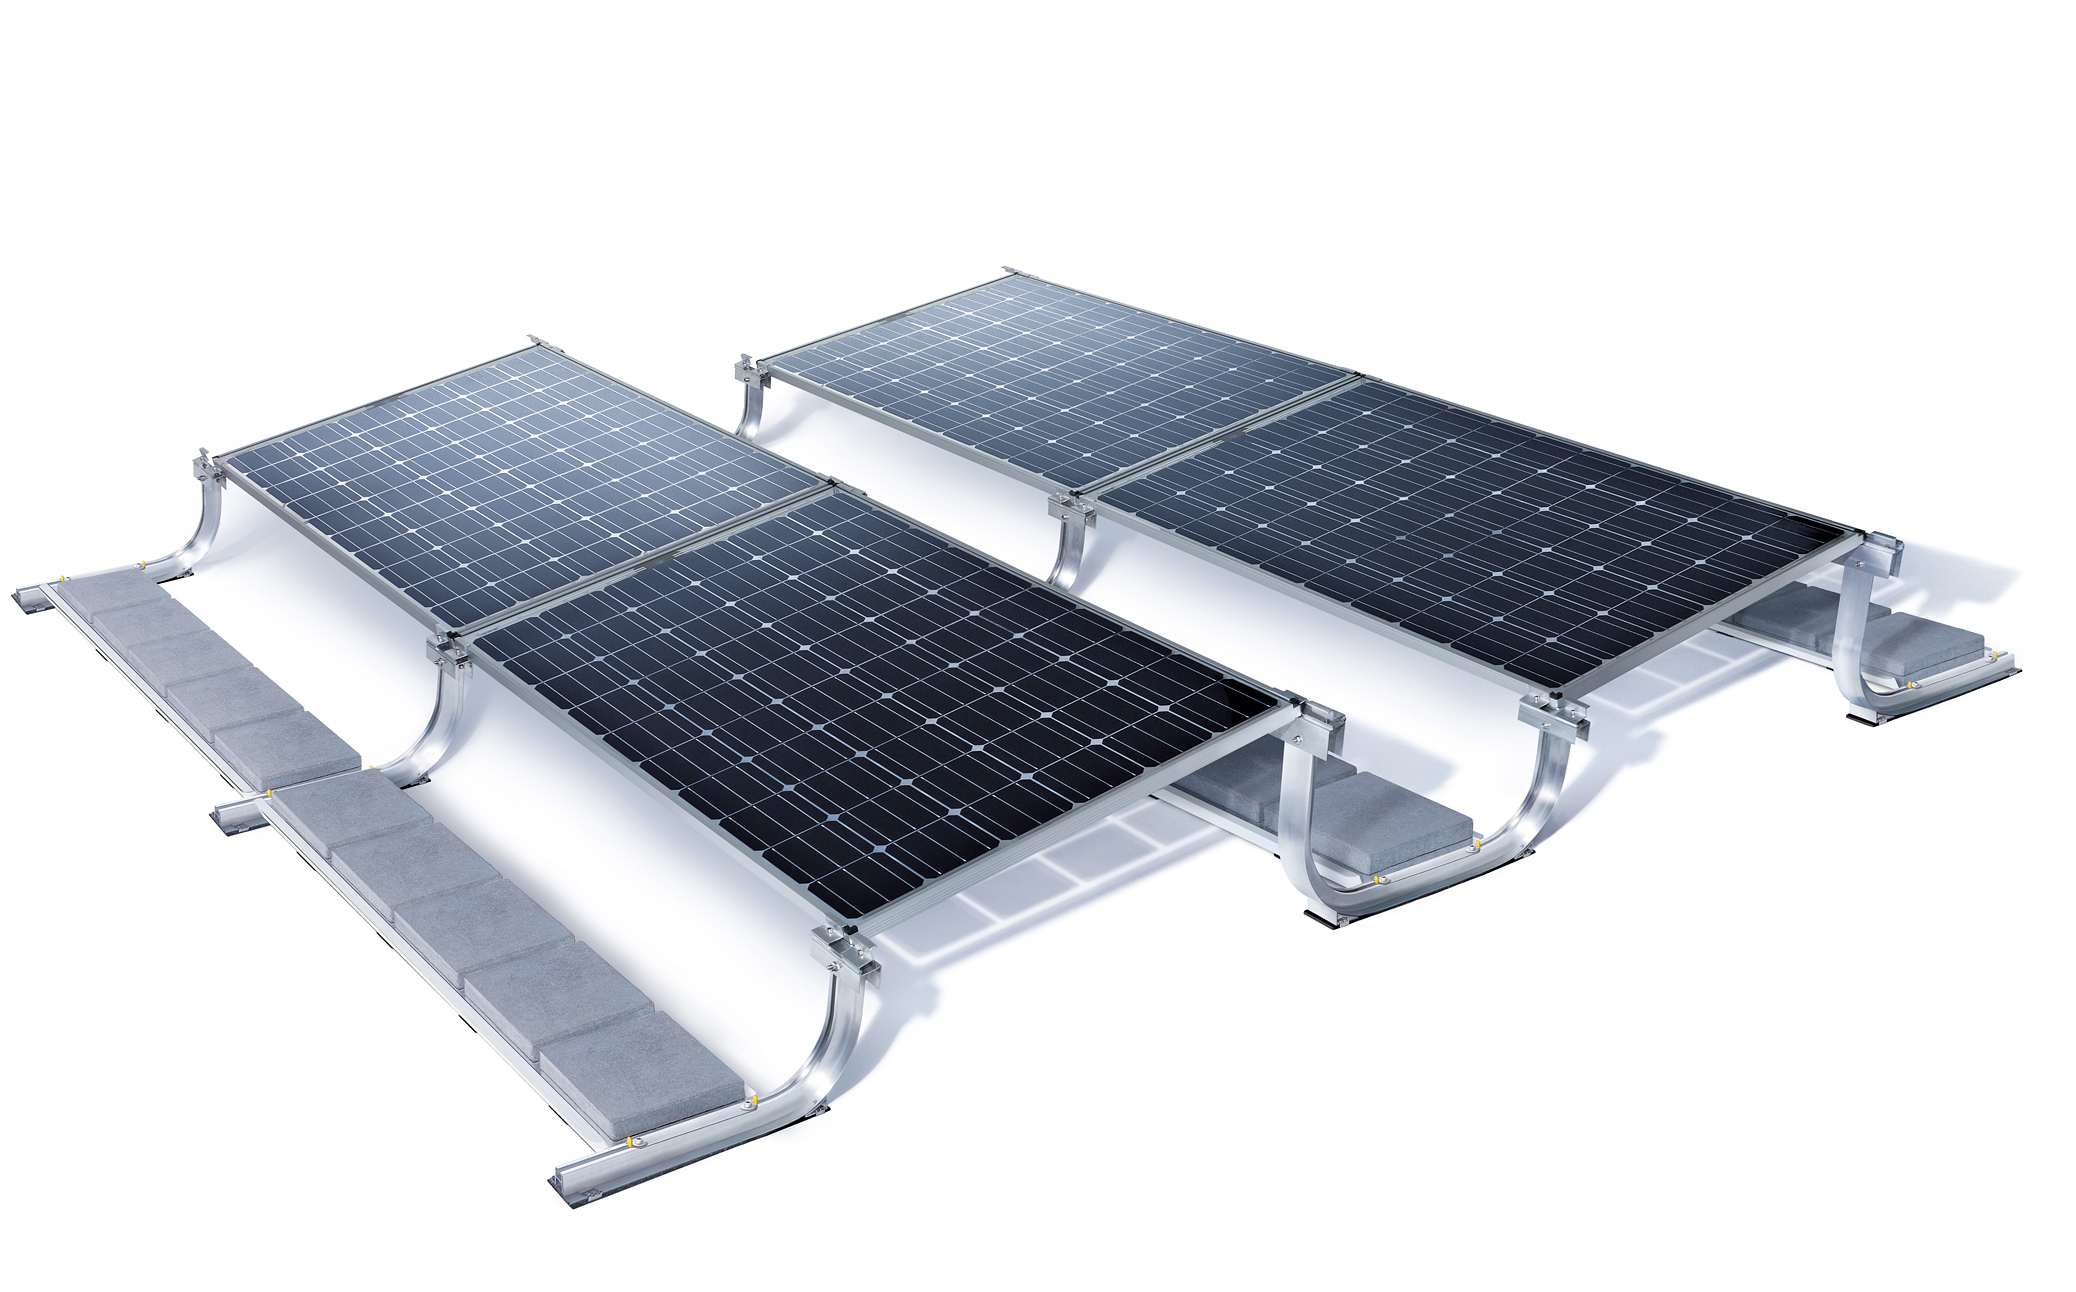 'Sunmodule Bisun' is a solar module active on both sides (bifacial) that converts light from all directions into electrical energy was also recently launched by SolarWorld